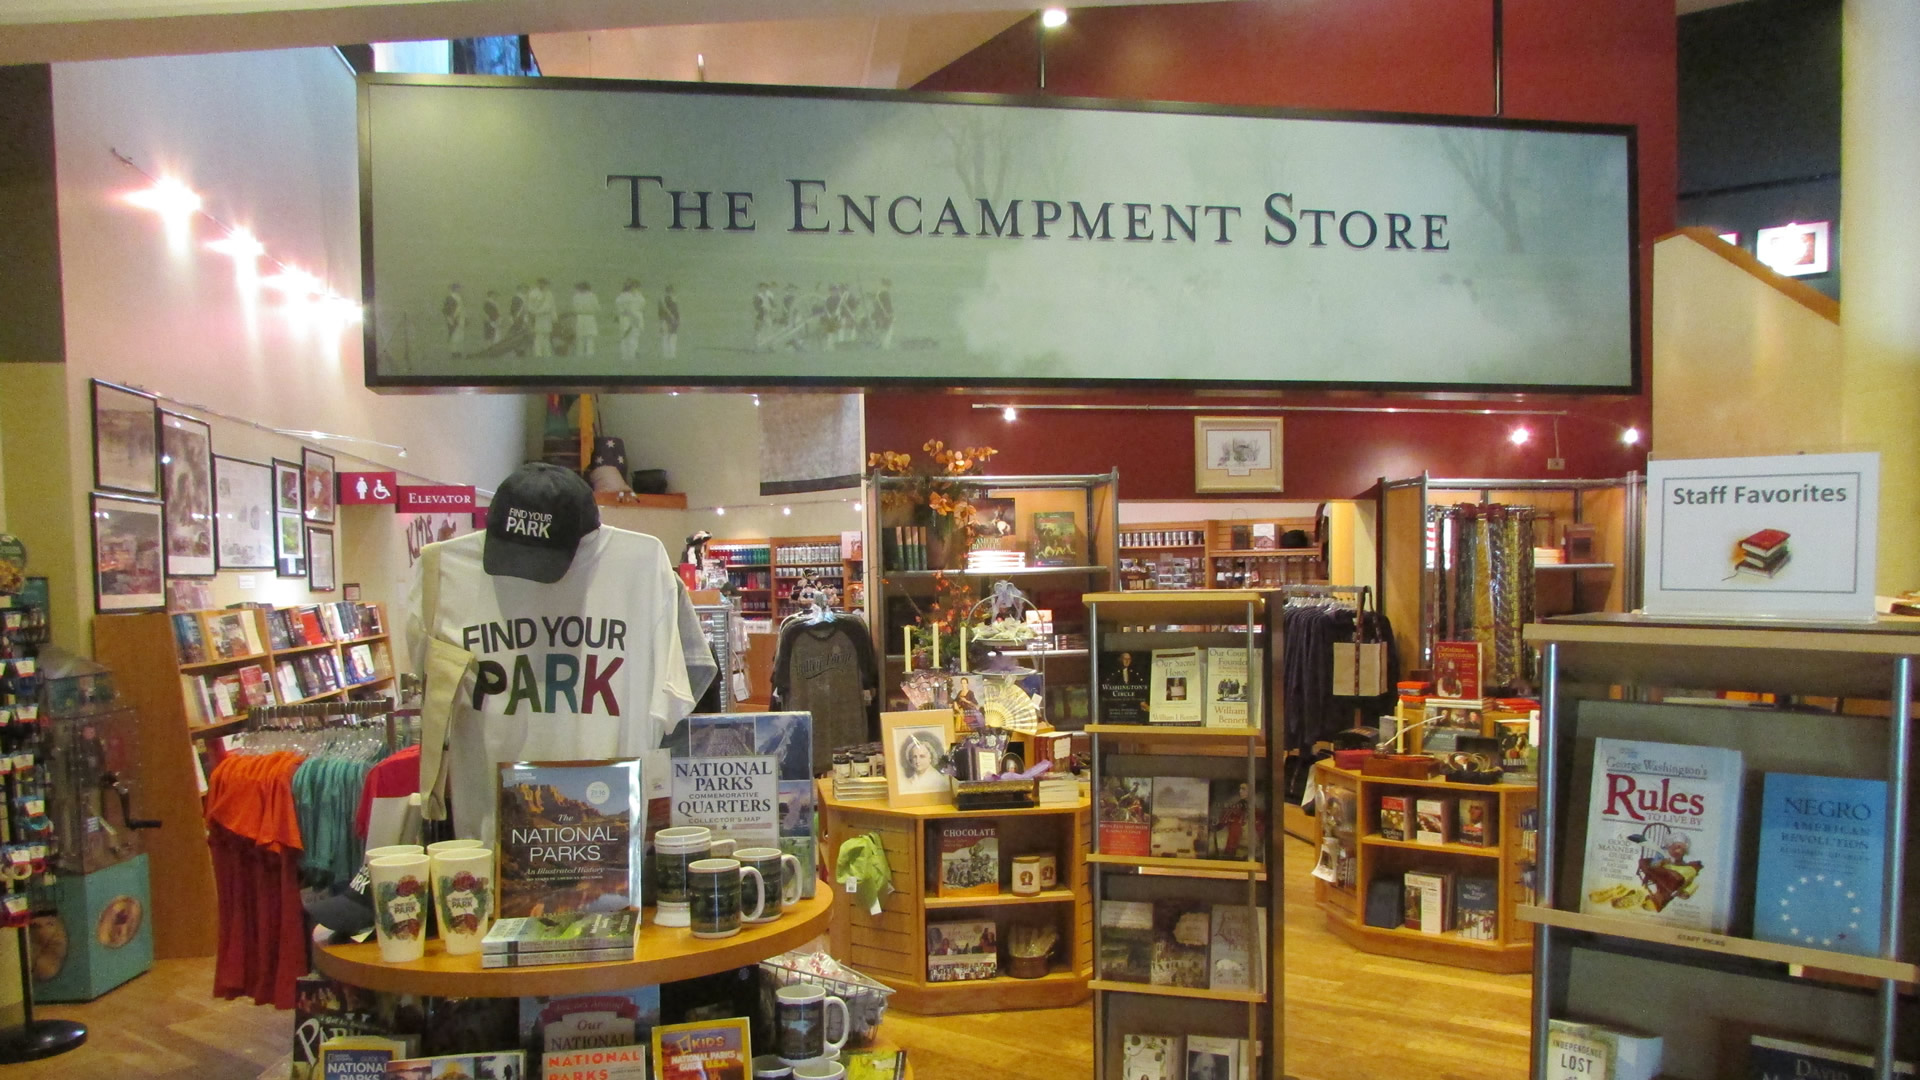 Home - The Encampment Store at Valley Forge National Historical Park